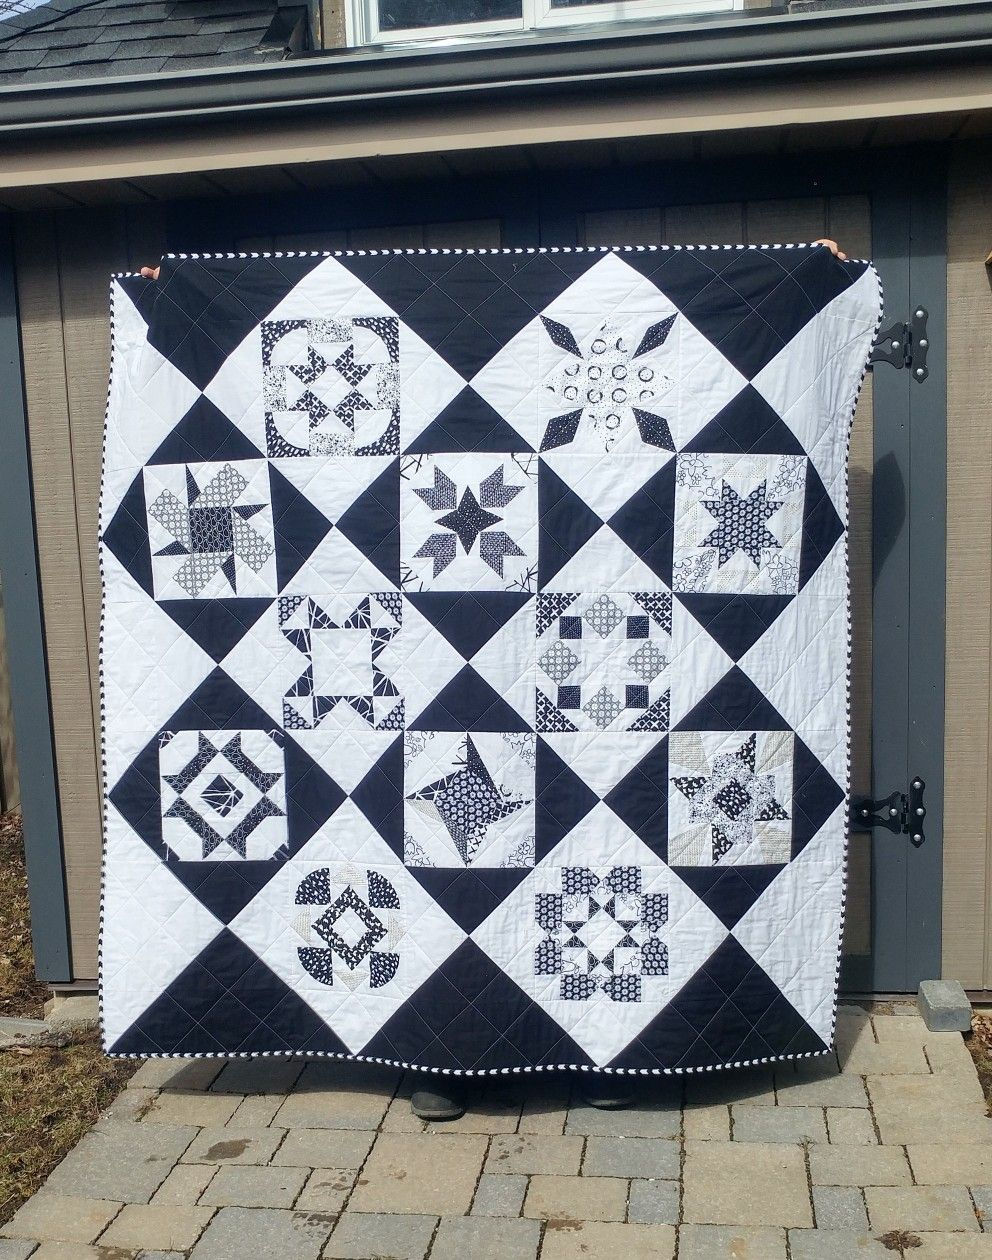 All But One Black And White Quilt For Sale Quilts For Sale Throw Quilt Quilts Black and white quilts for sale